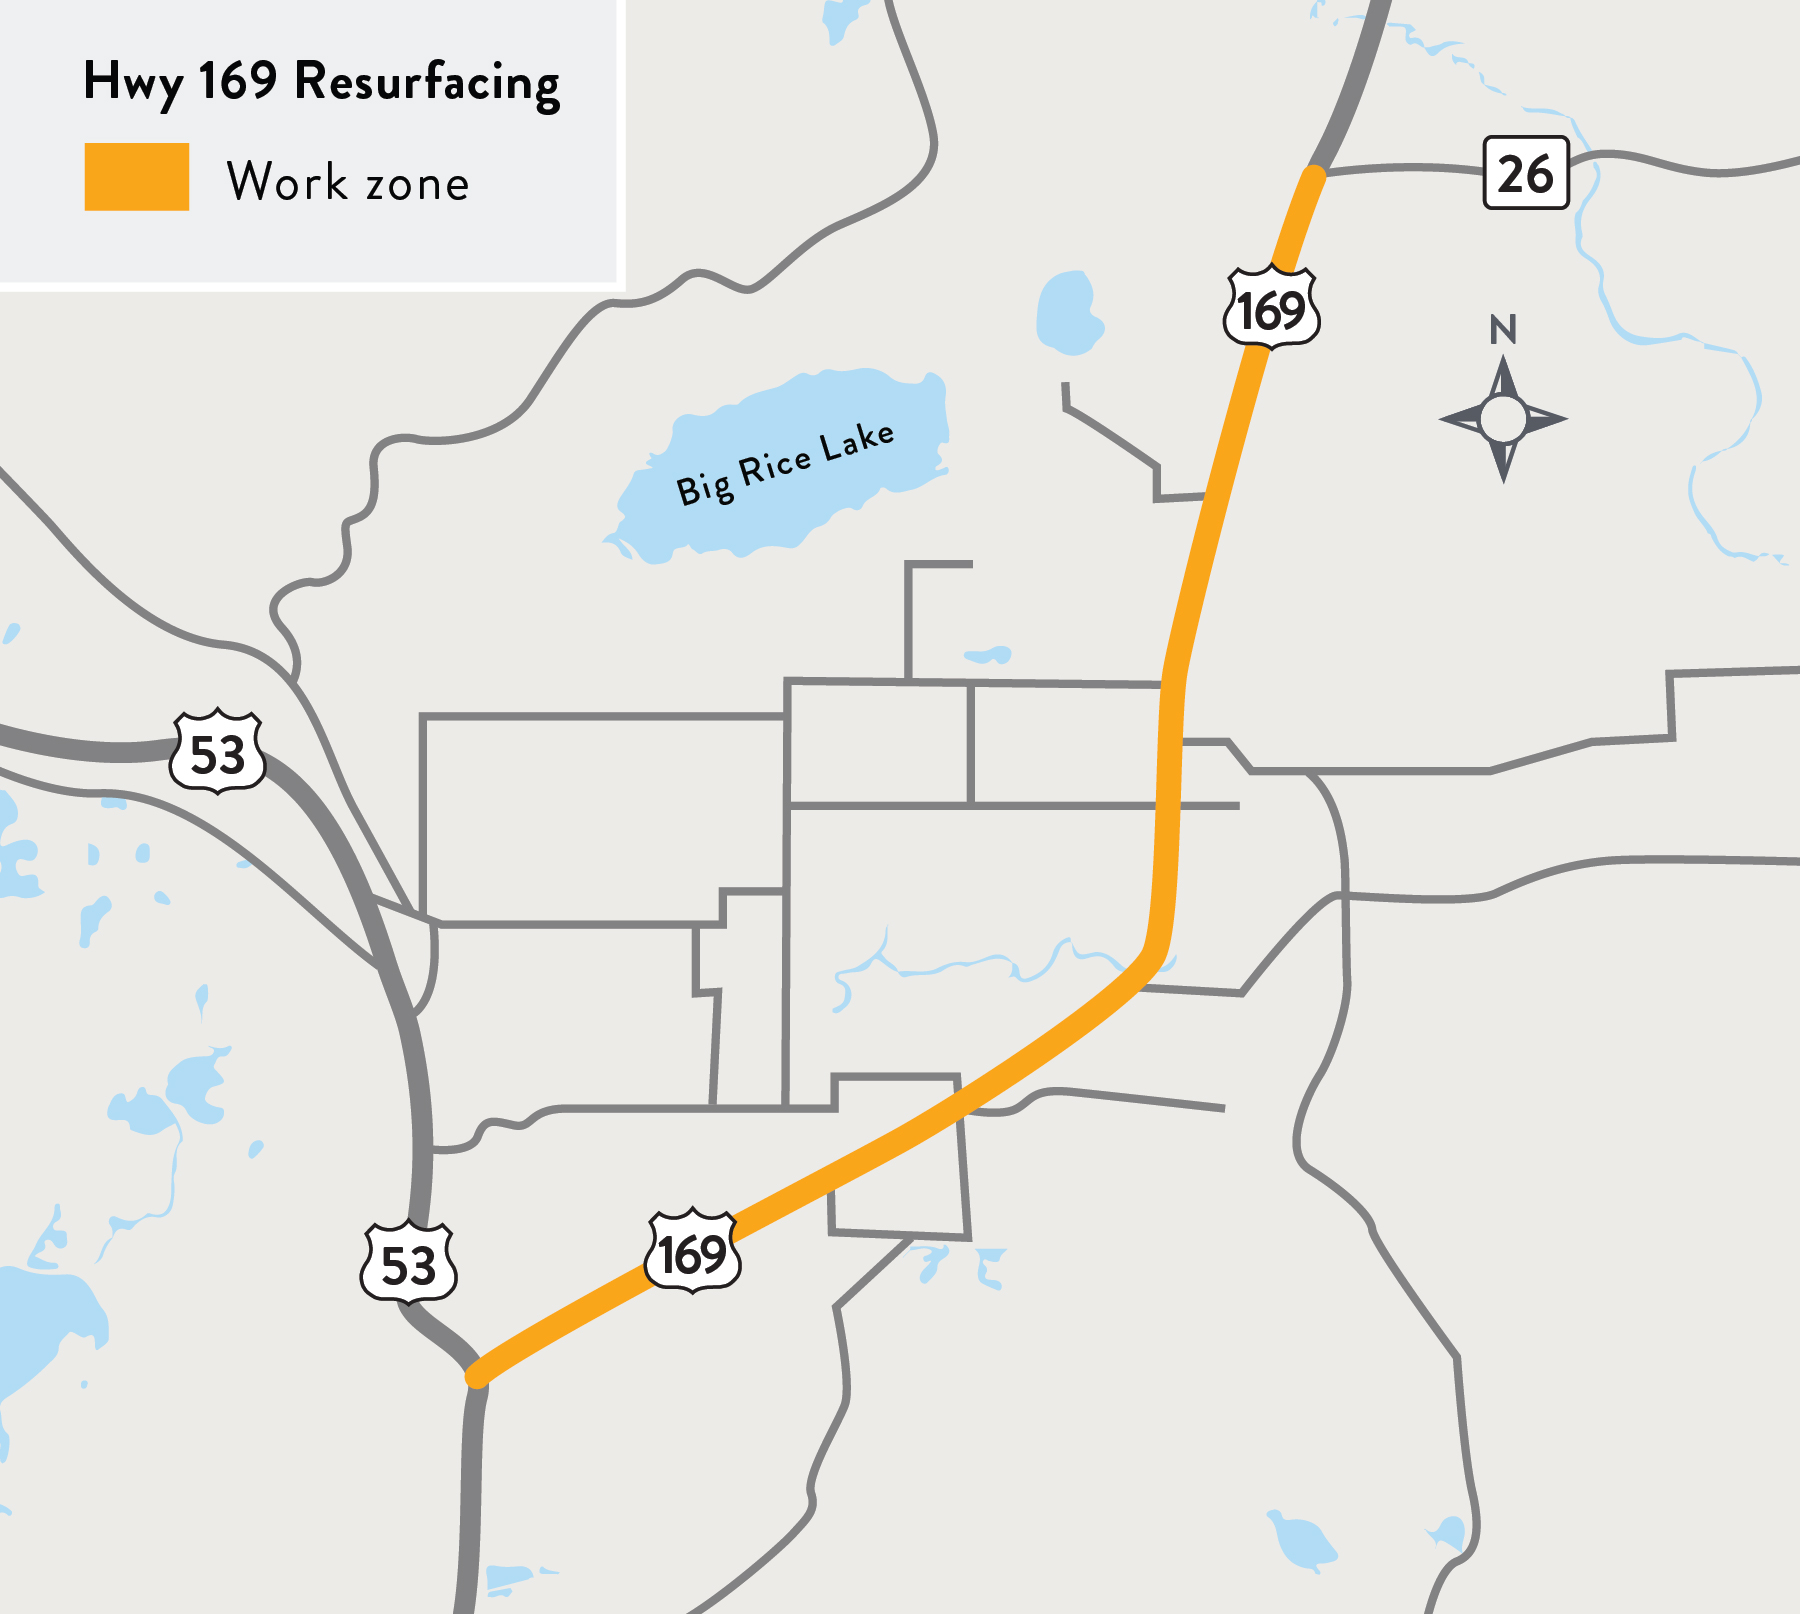 A map of the Hwy 169 resurfacing project area on Hwy 169 between Hwy 53 and Hwy 26